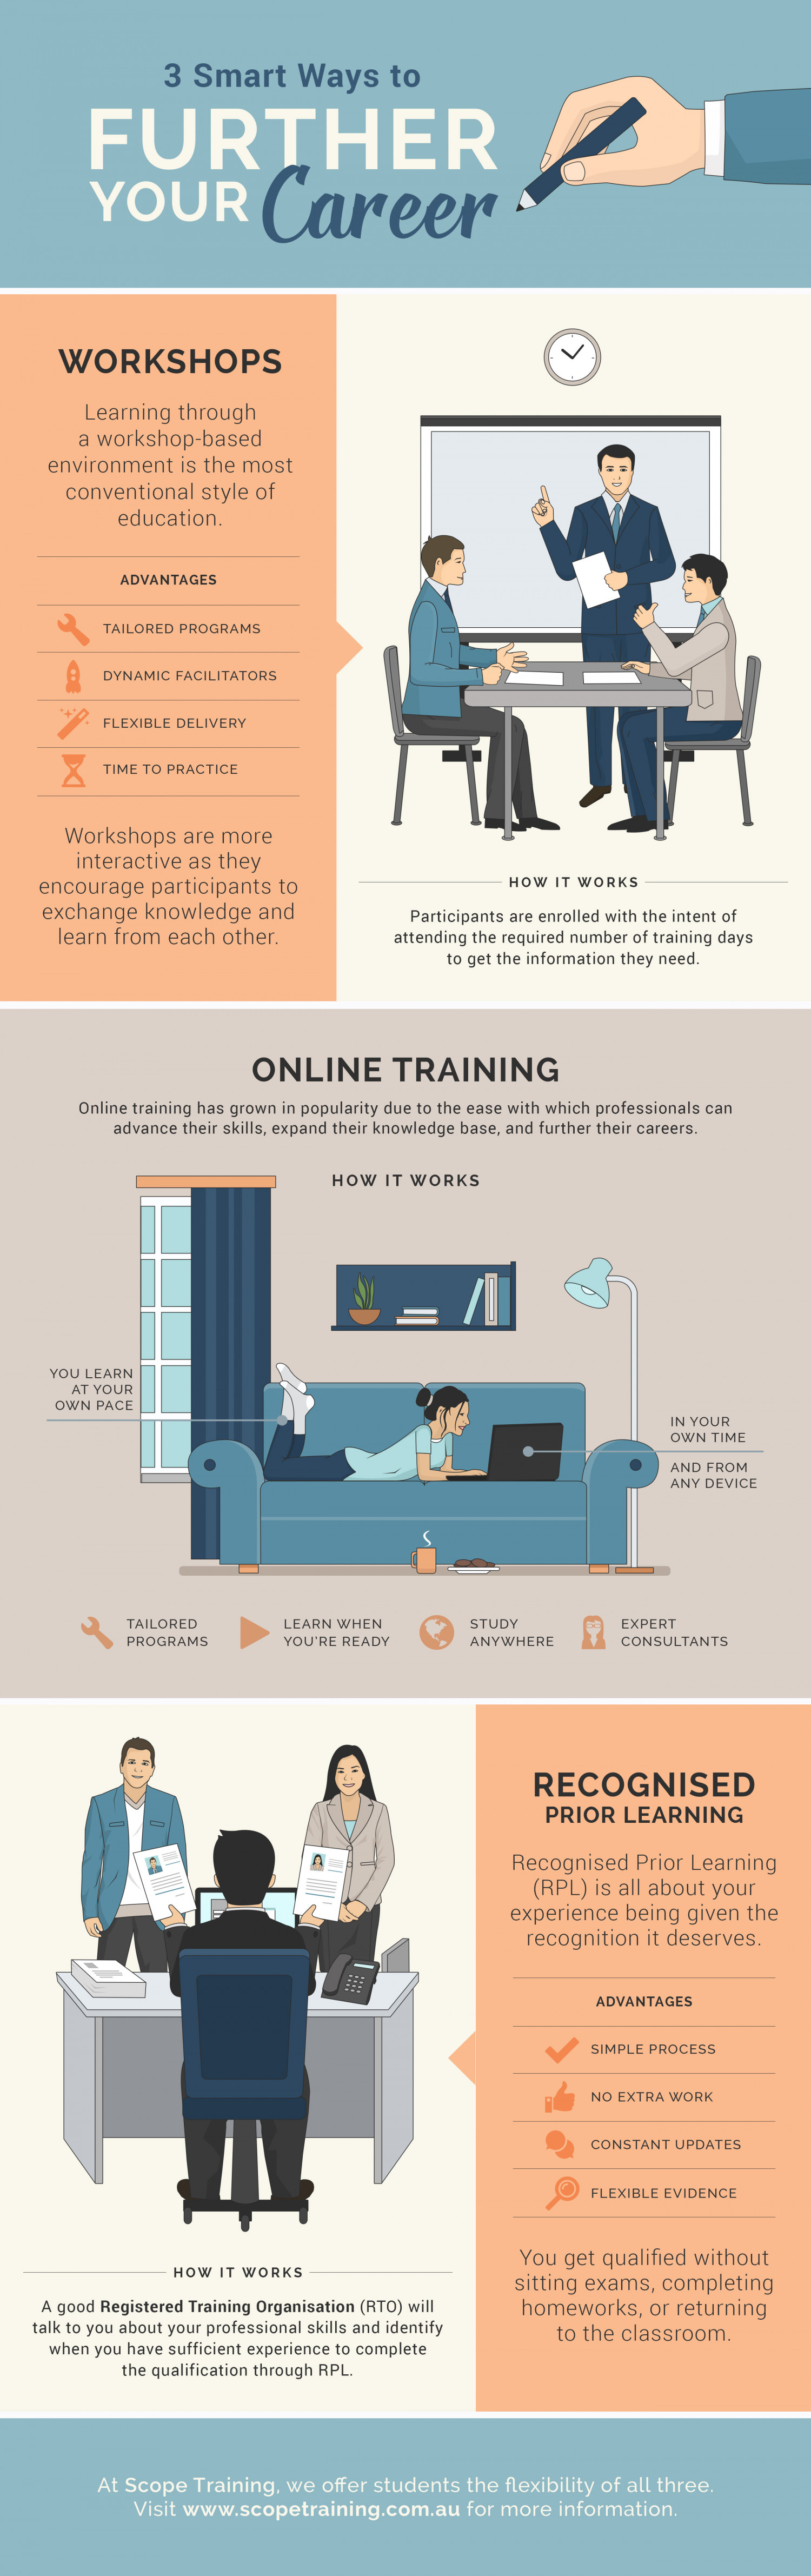 3 Smart Ways to Further Your Career Infographic